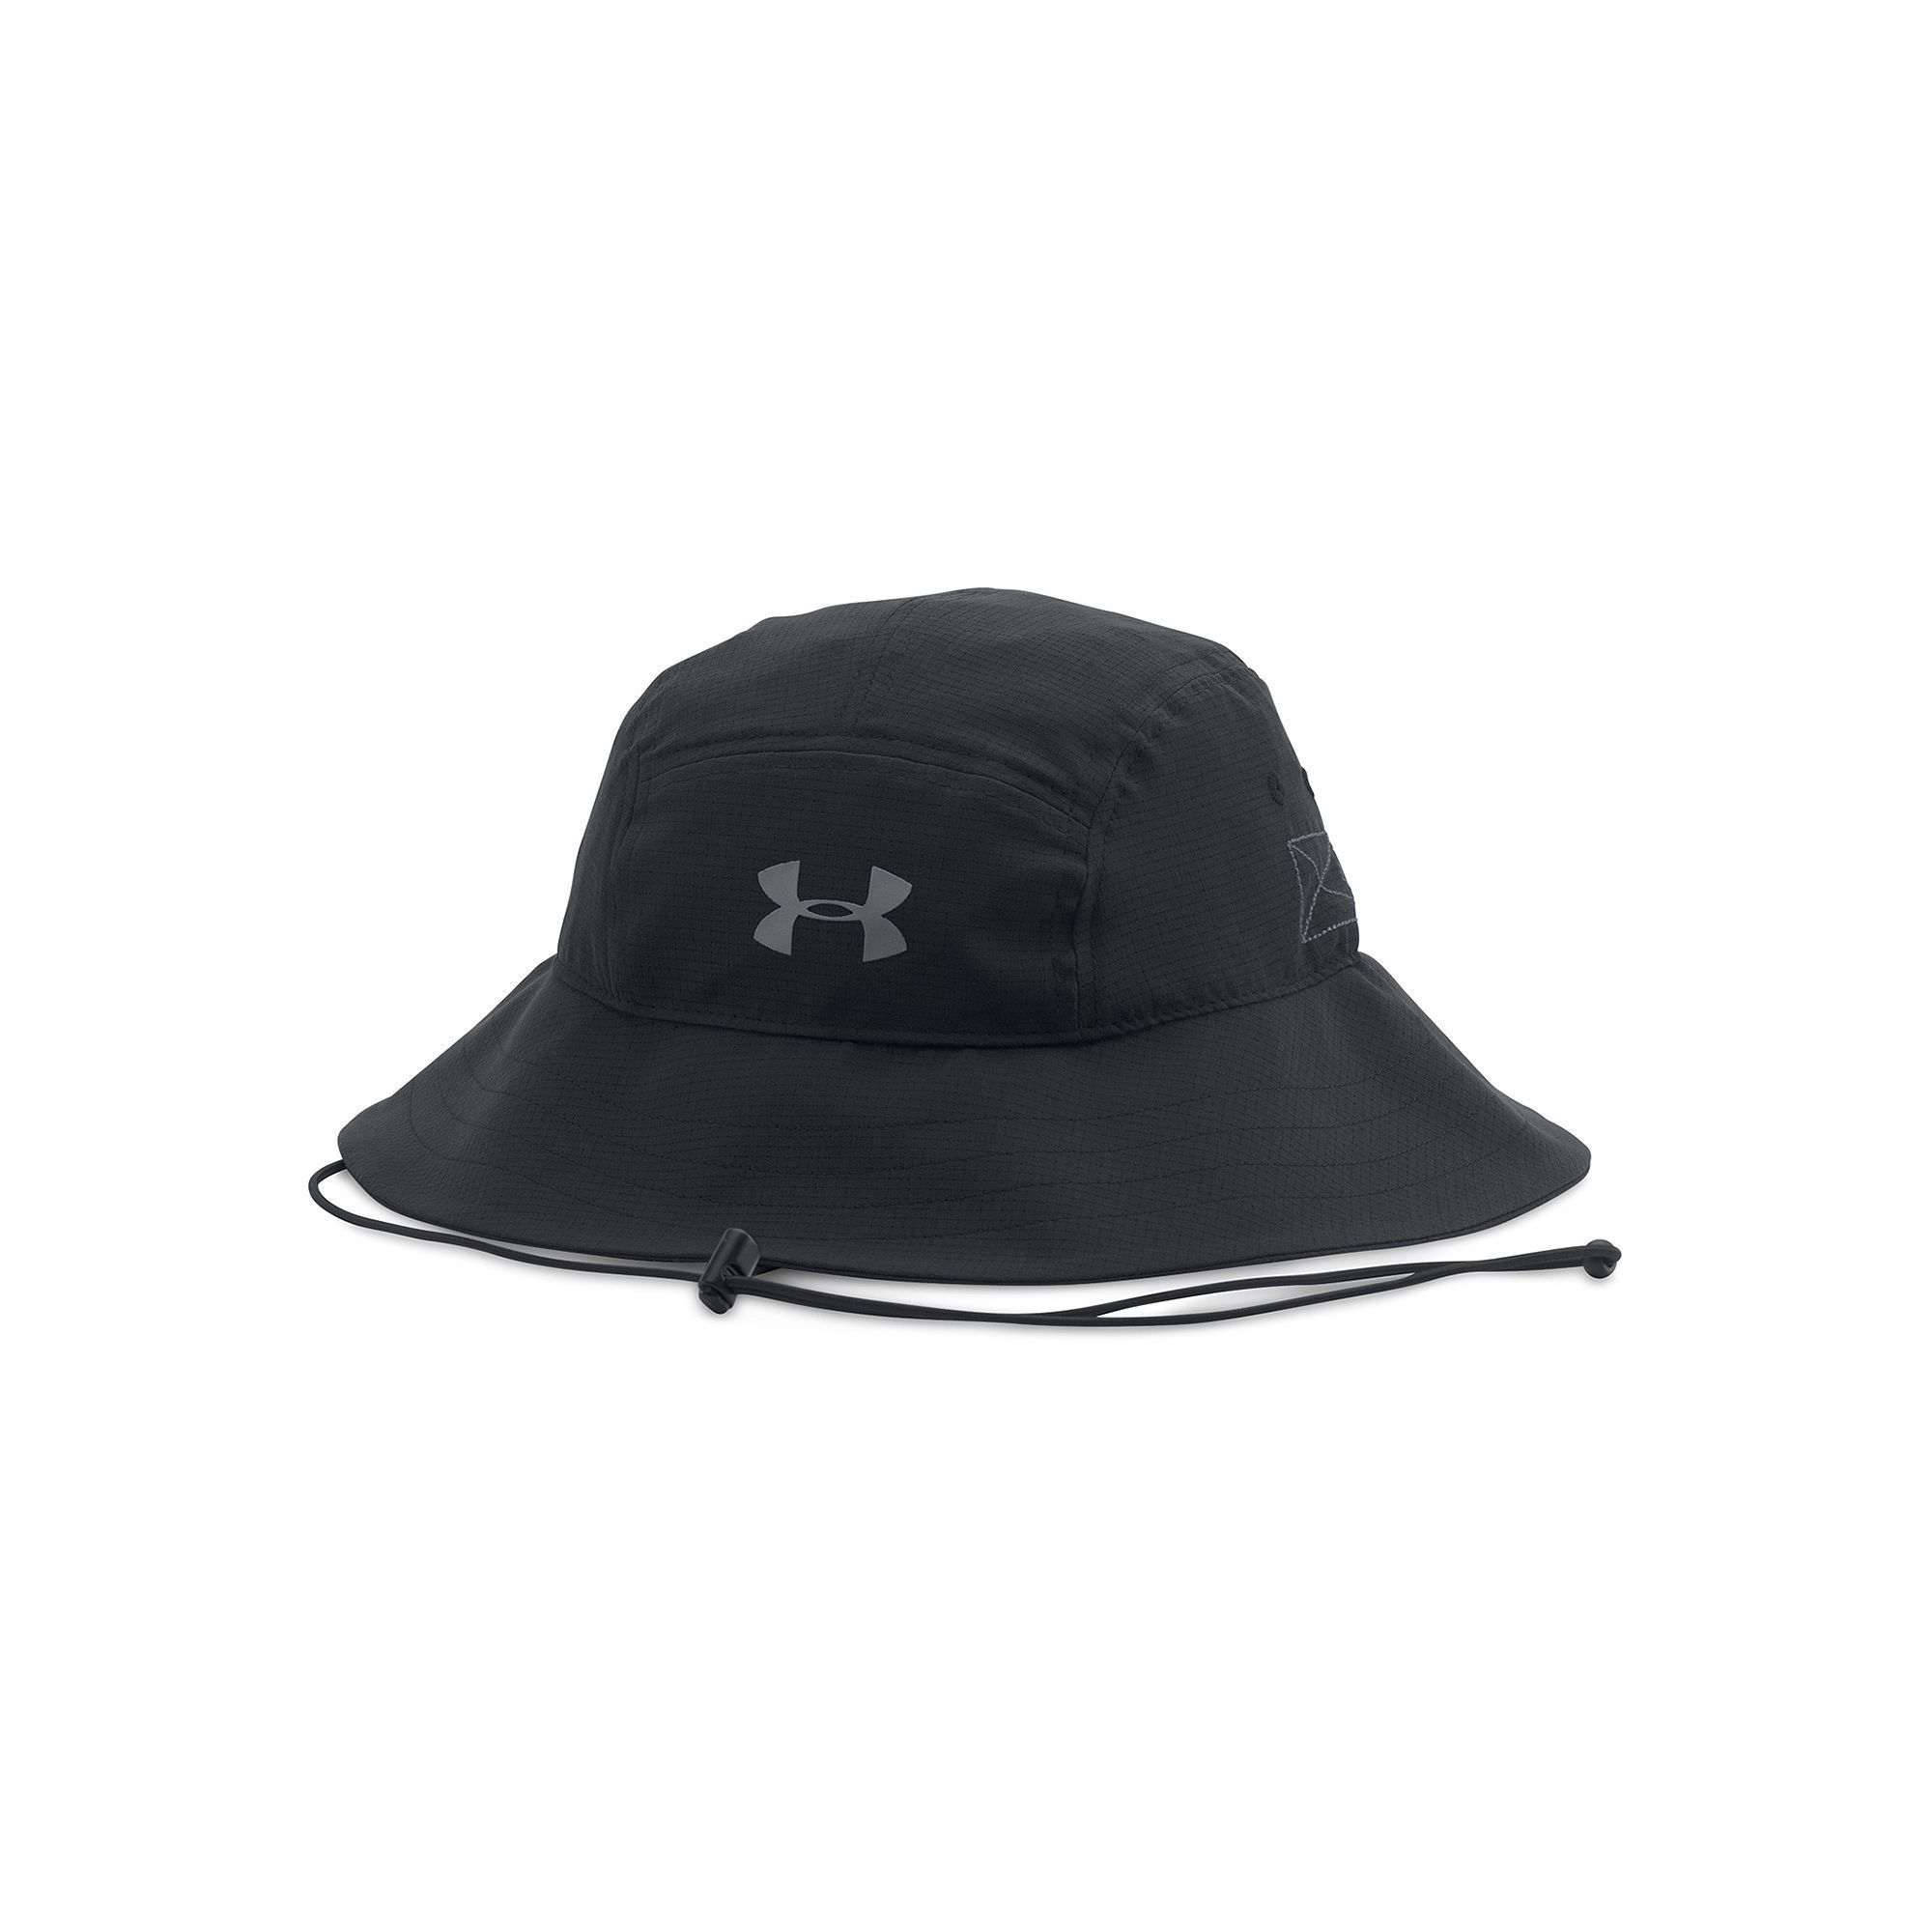 298dbb75b Men's Under Armour Warrior Bucket Hat | Products | Hats, Hats for ...